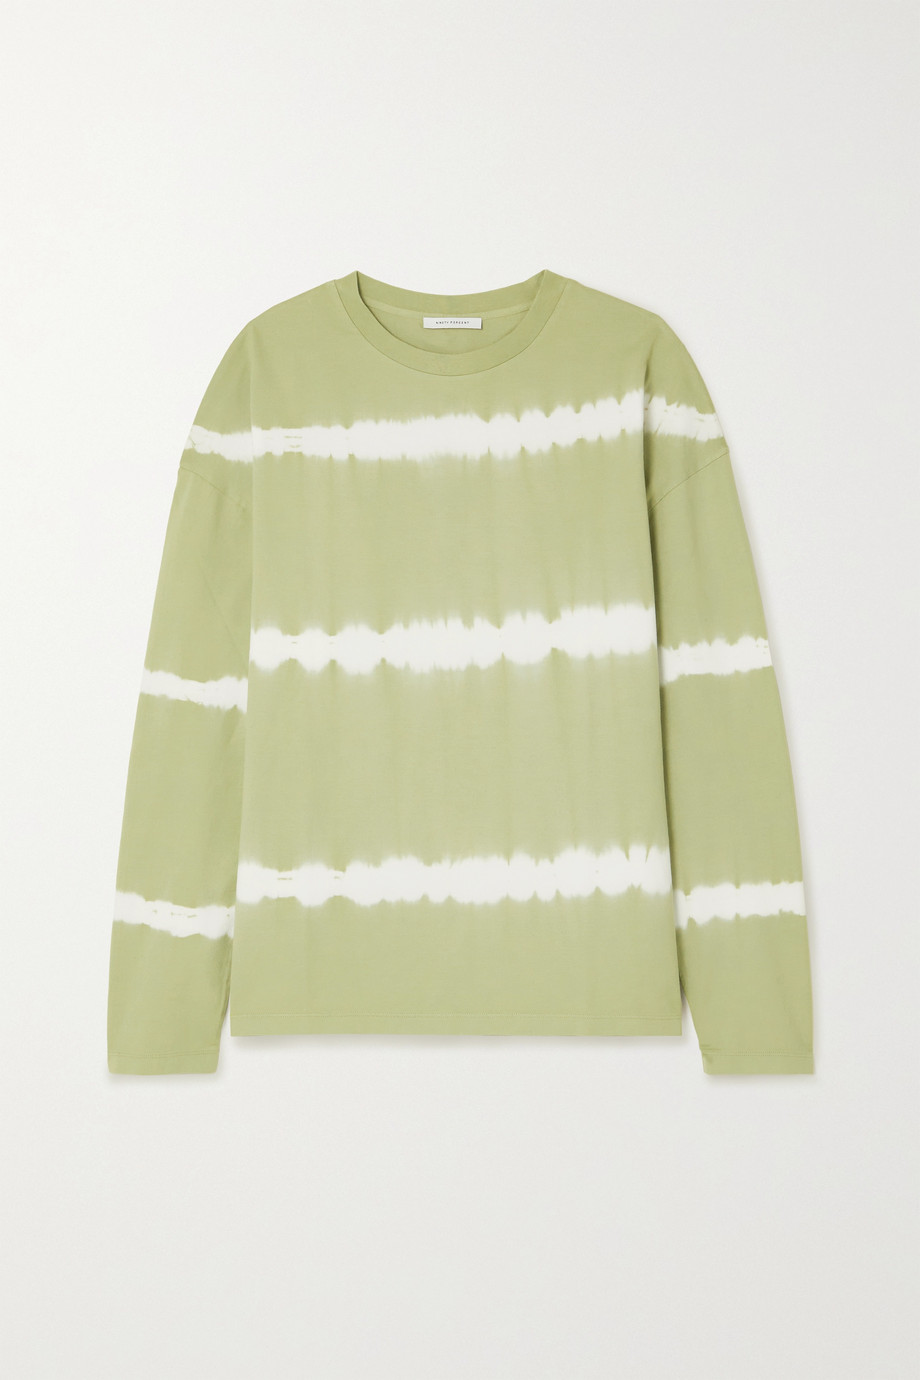 Ninety Percent Tie-dyed organic cotton-jersey top